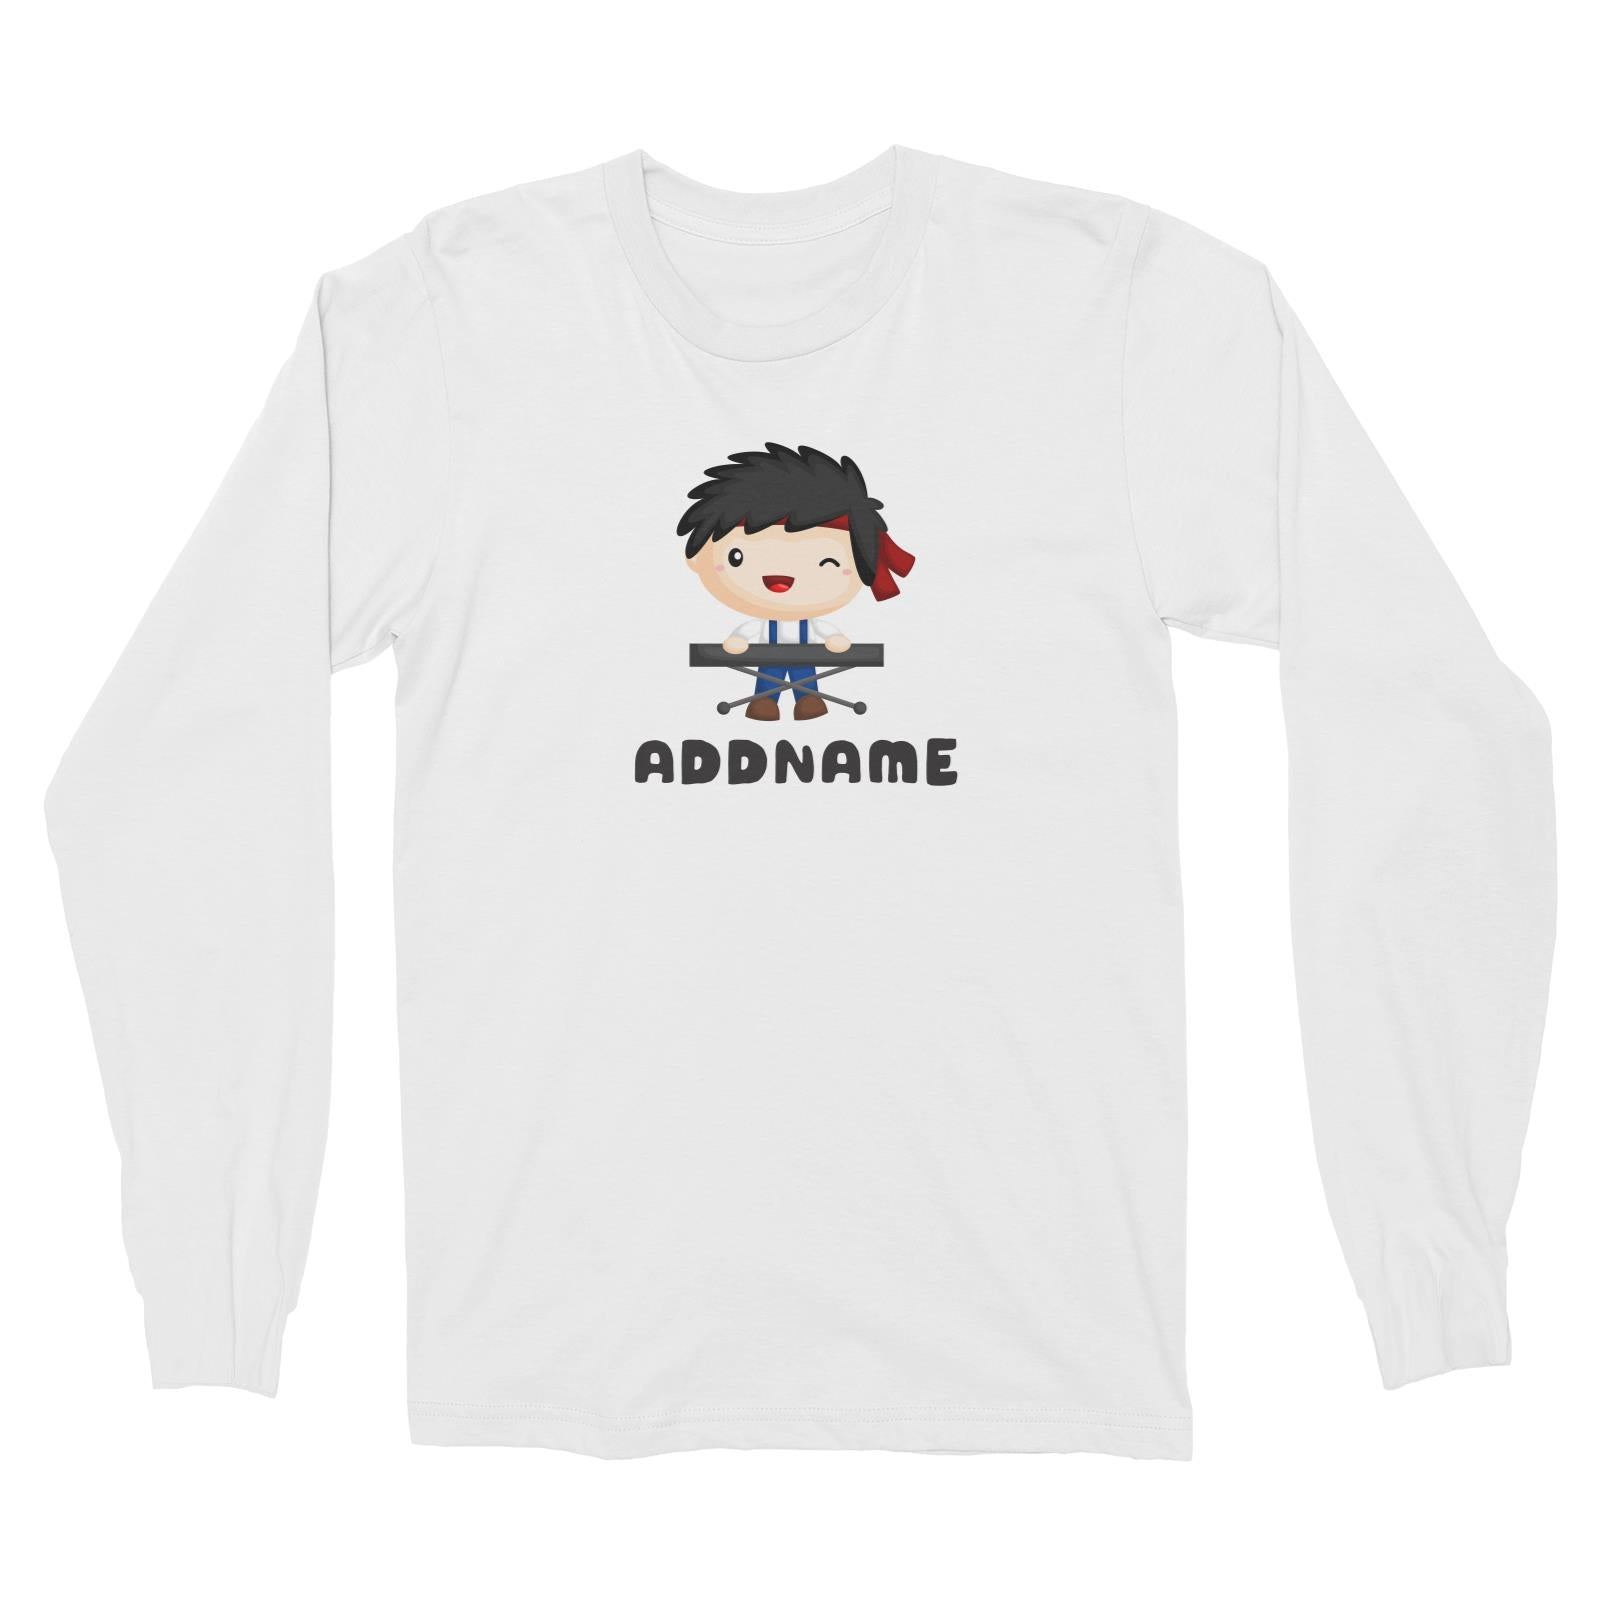 Birthday Music Band Boy Playing Electric Piano Addname Long Sleeve Unisex T-Shirt